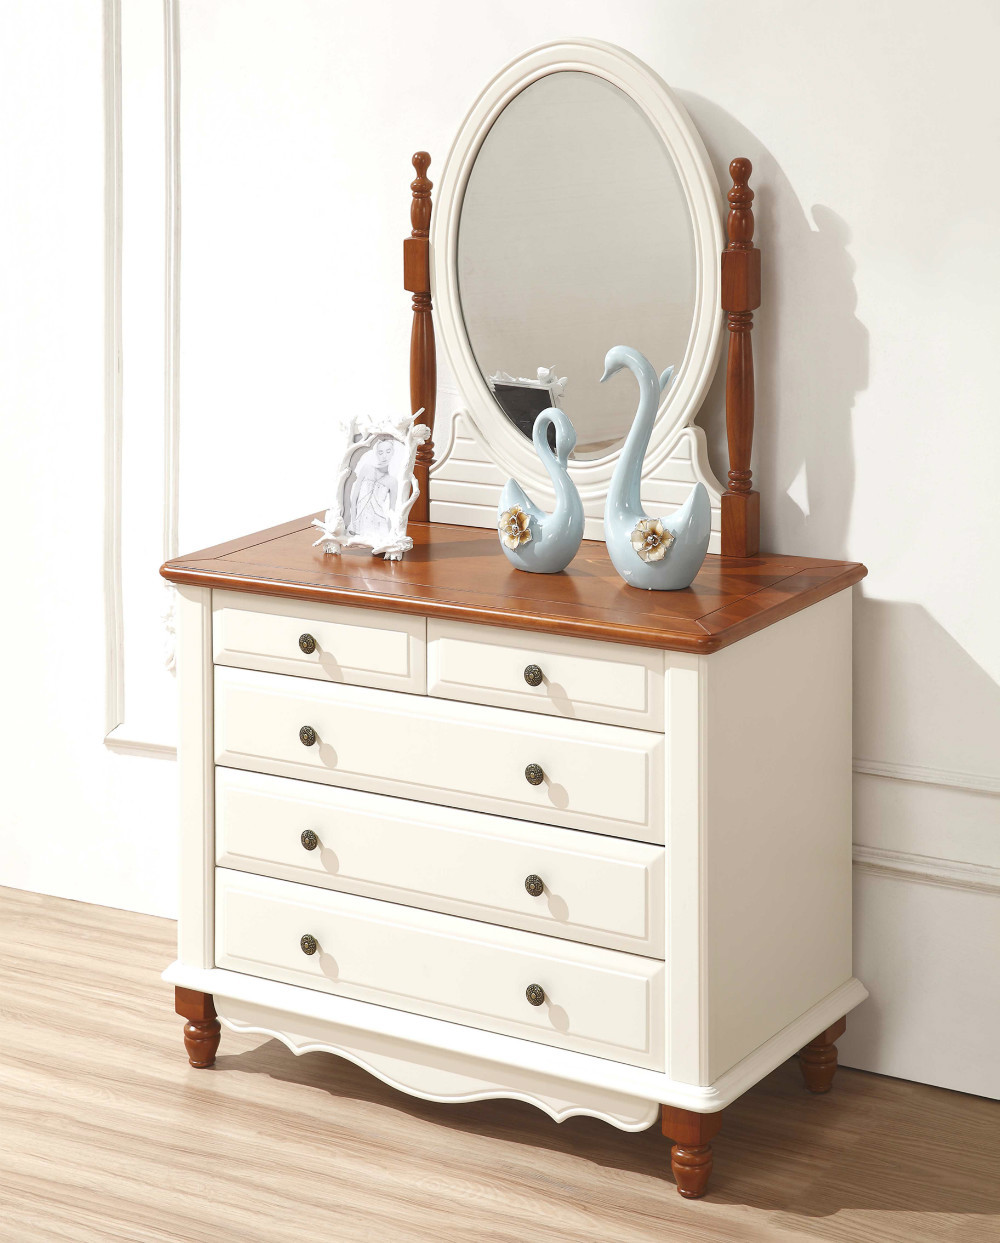 Buy 1 bed 2 bedside dresser mirror for Mediterranean style bedroom furniture